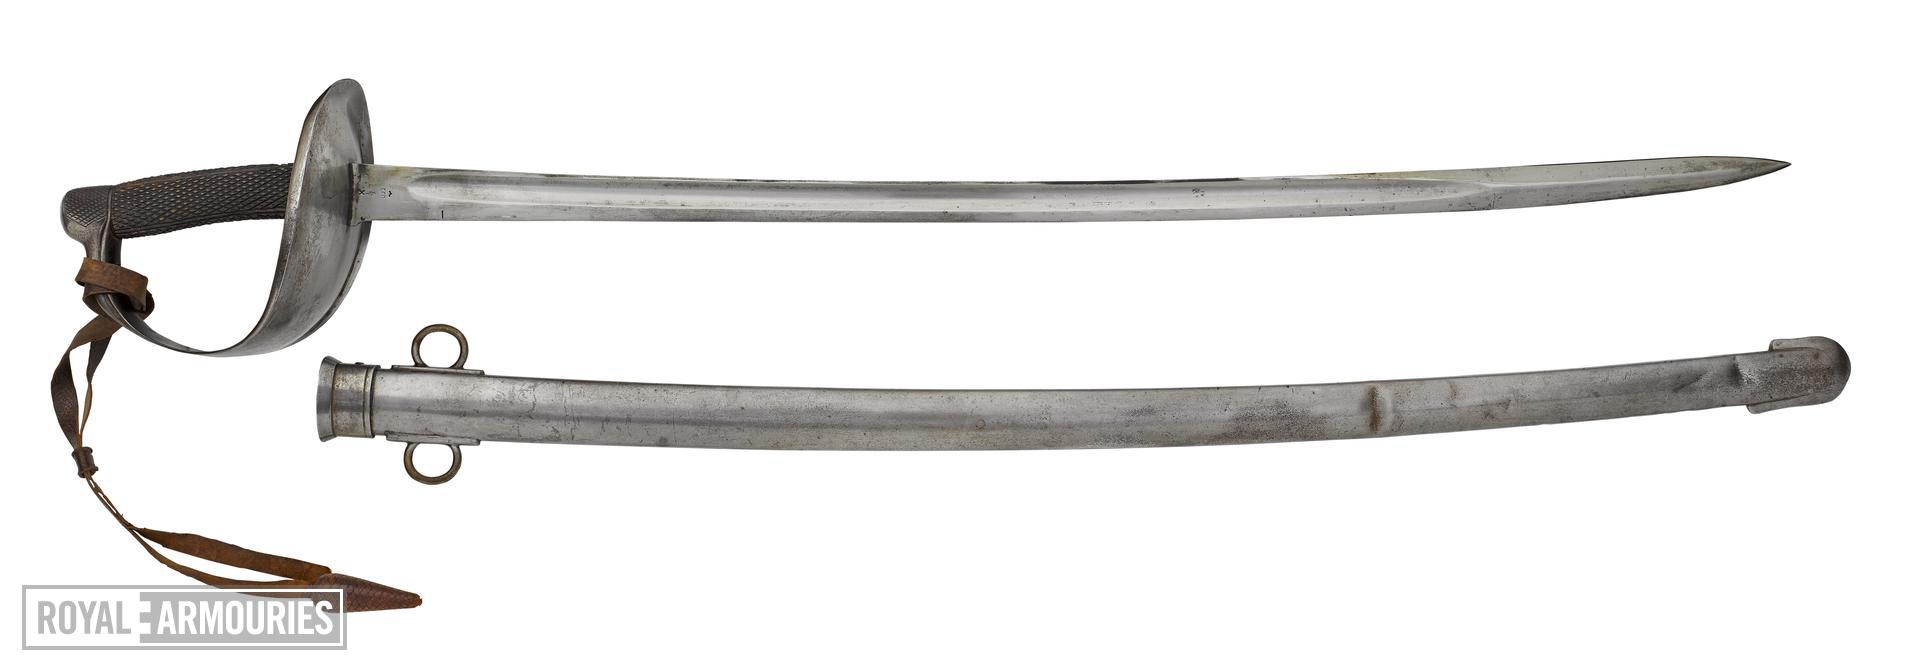 Infantry officer's sword with steel scabbard, Germany, 1914-1918